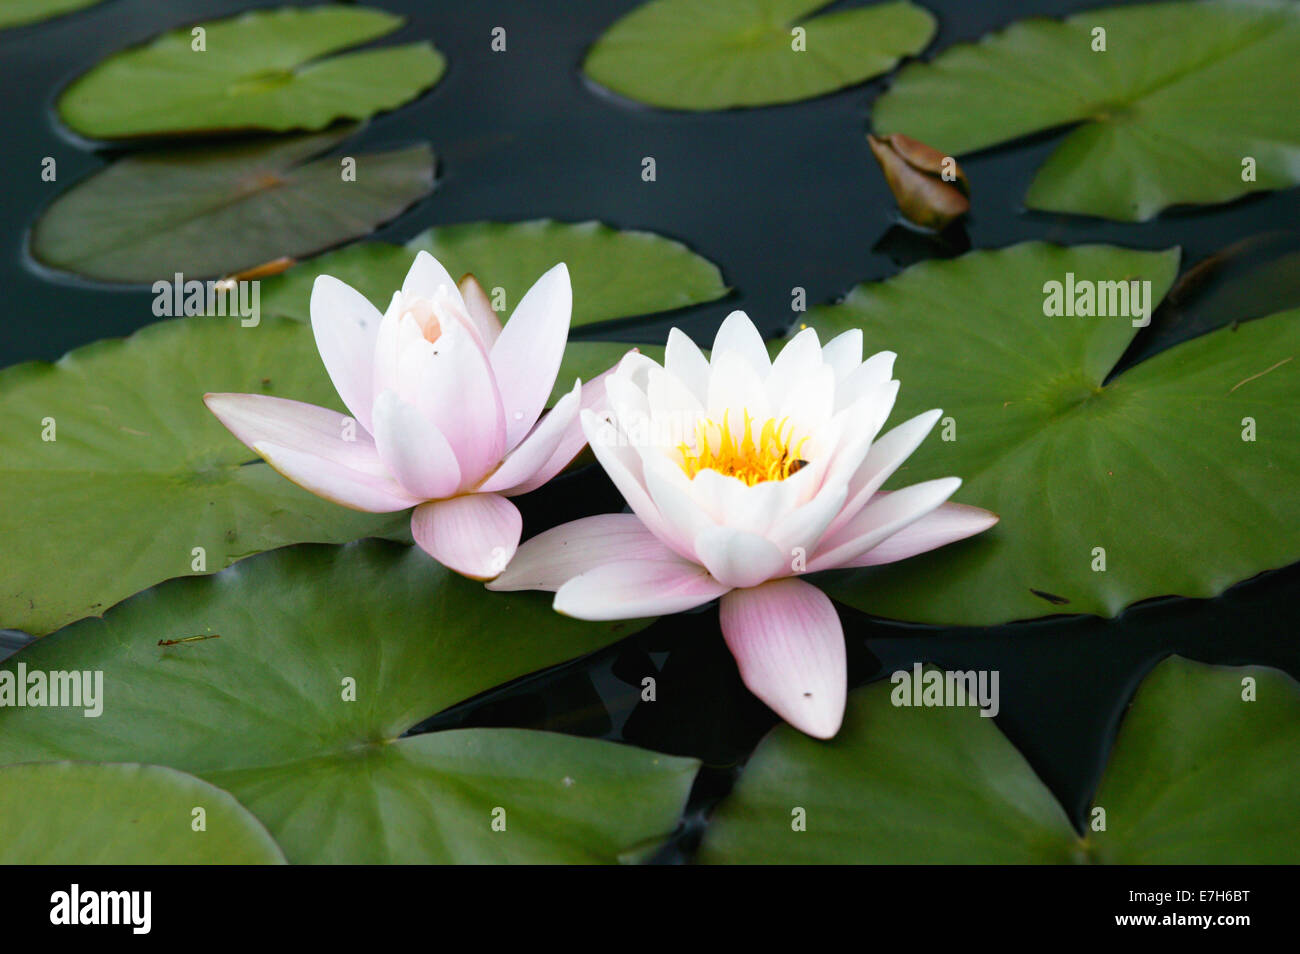 Light pink and white lily flowers amongst lily pads in a pond stock light pink and white lily flowers amongst lily pads in a pond izmirmasajfo